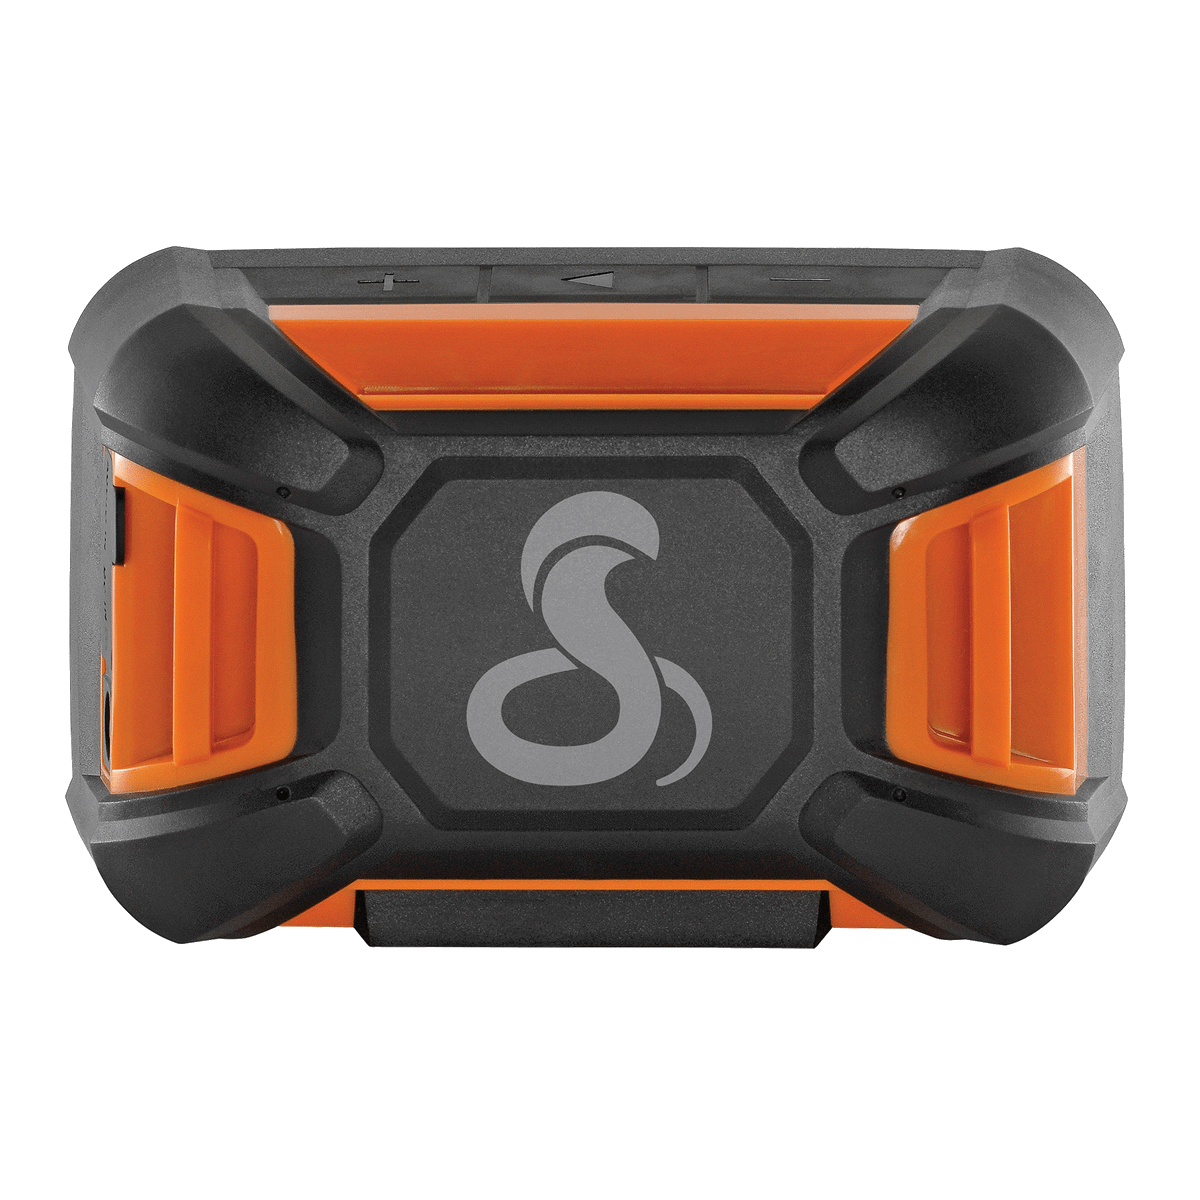 Bluetooth Box Cobra Airwave Box Bluetooth Garsiakalbis Racijos Lt